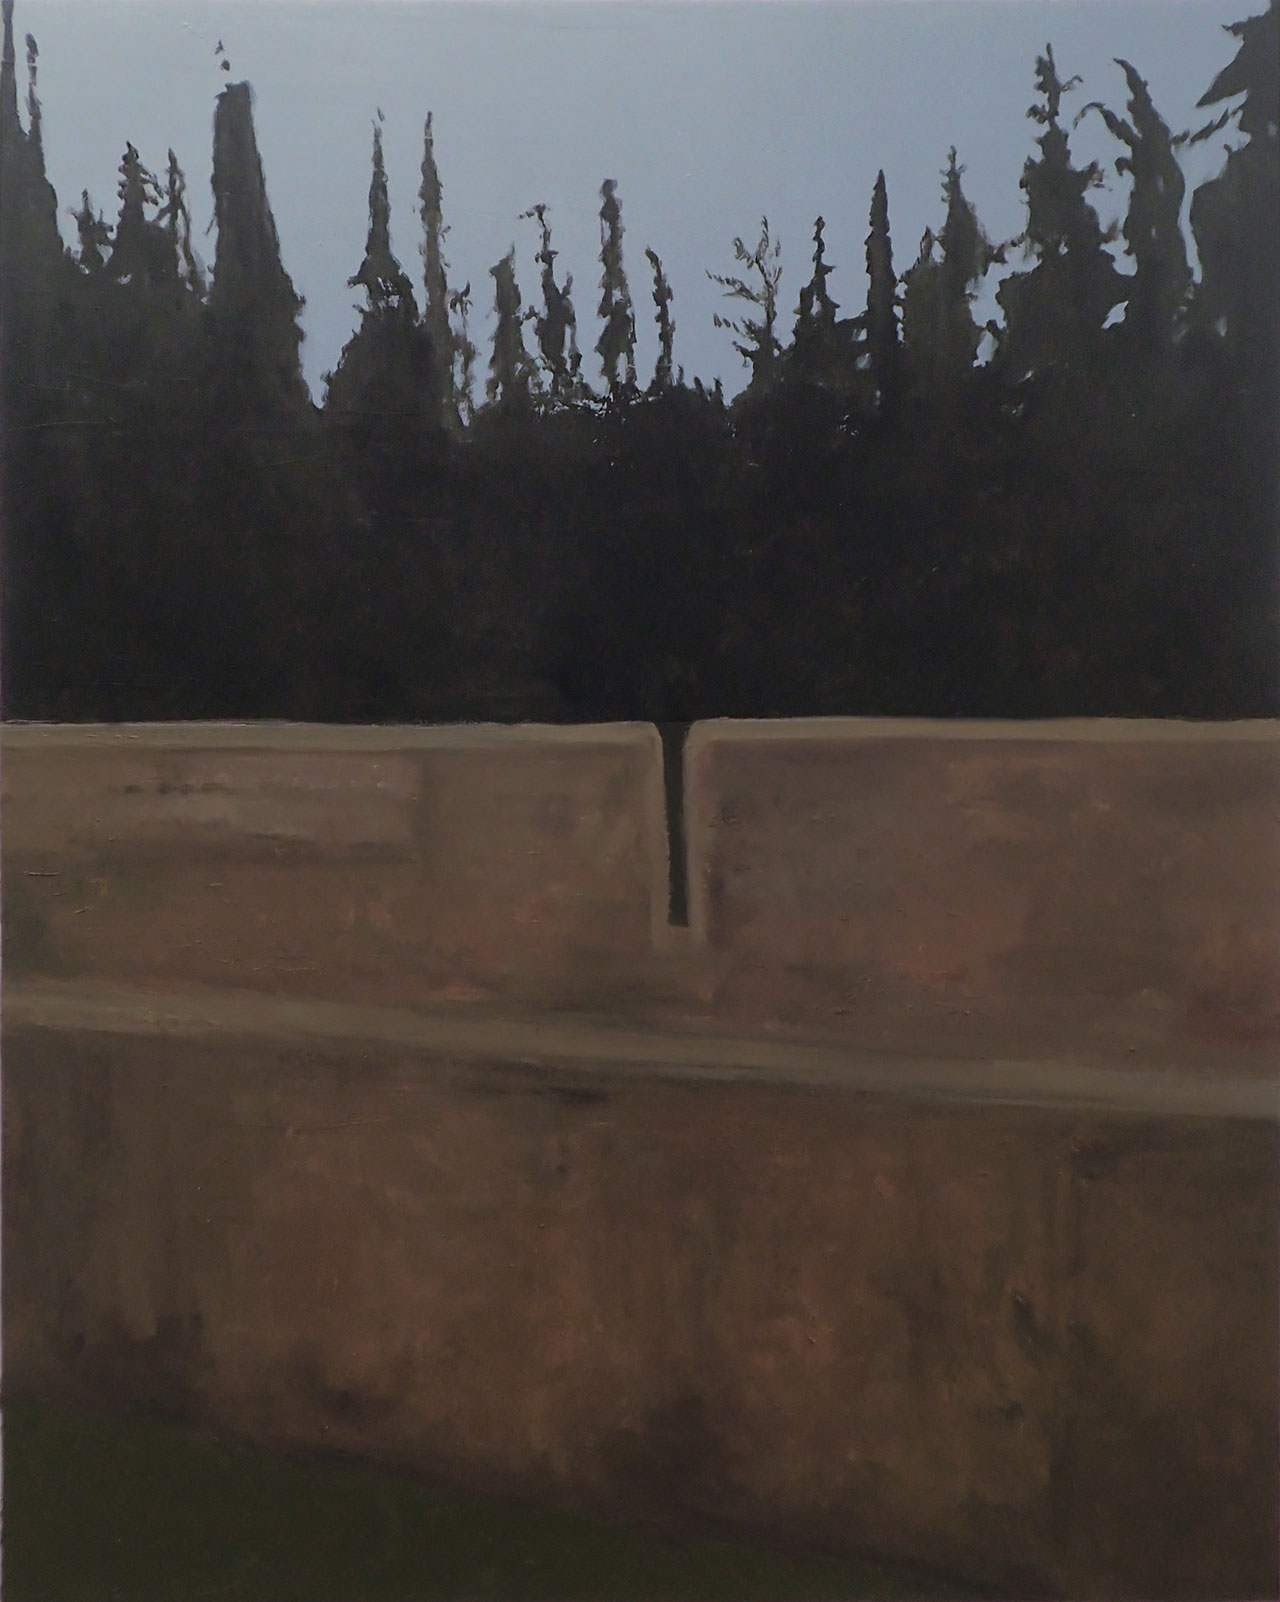 Ιlias Papailiakis, Τhe Firing Range. The back side, 2016, oil on canvas, 150 x 120 cm. Courtesy Elika Gallery.